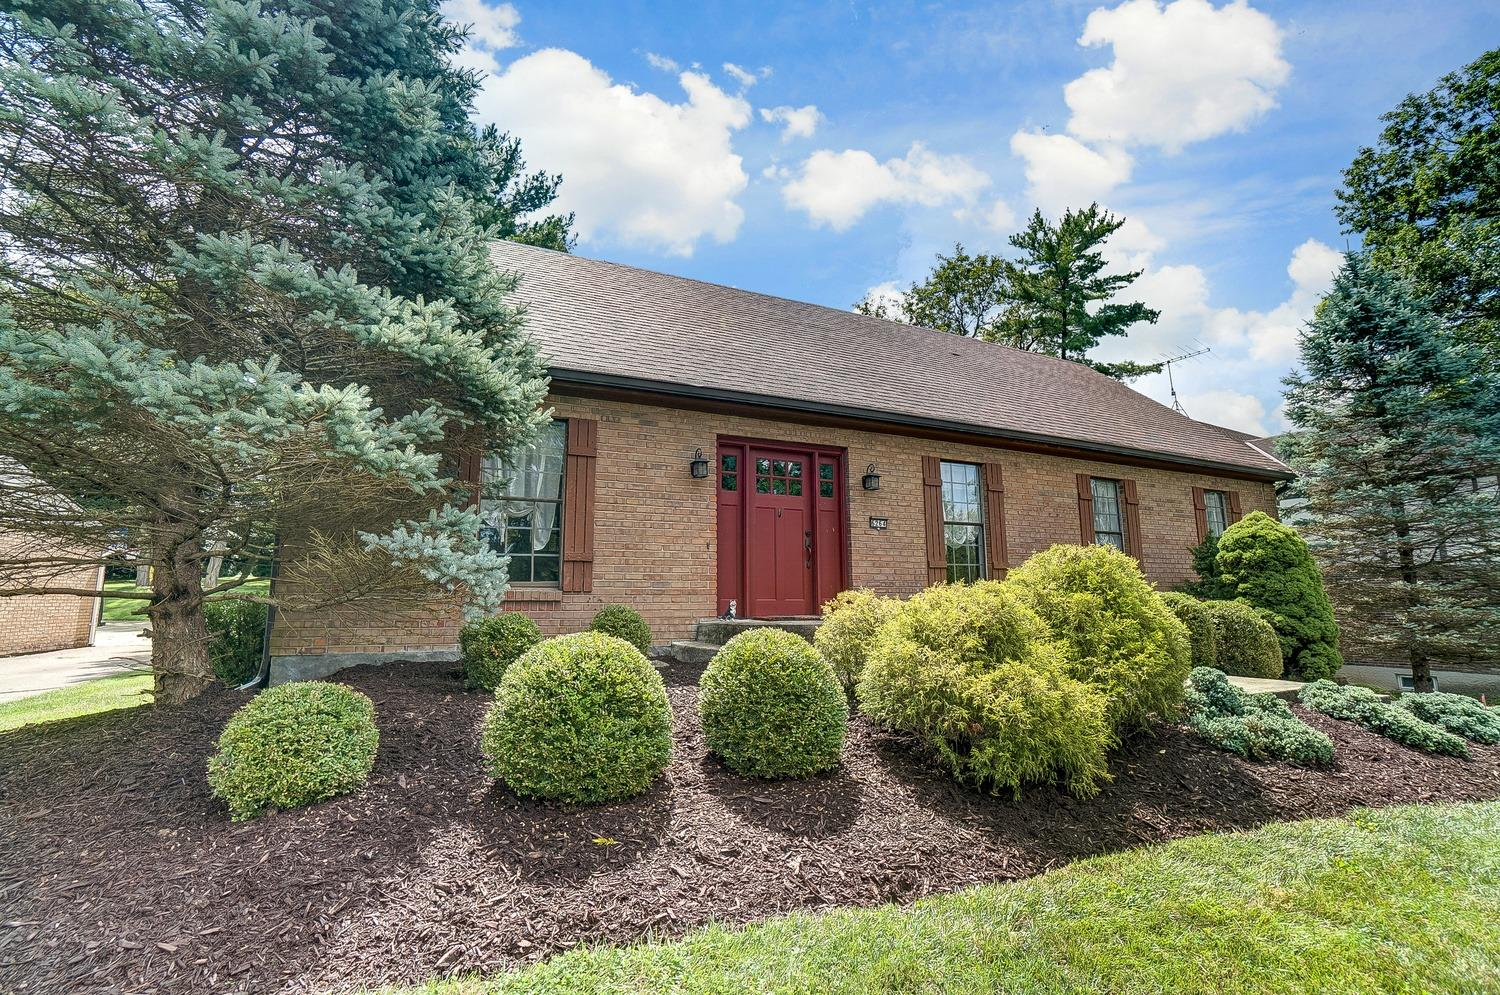 Photo 3 for 6264 Twinwillow Ln White Oak, OH 45247